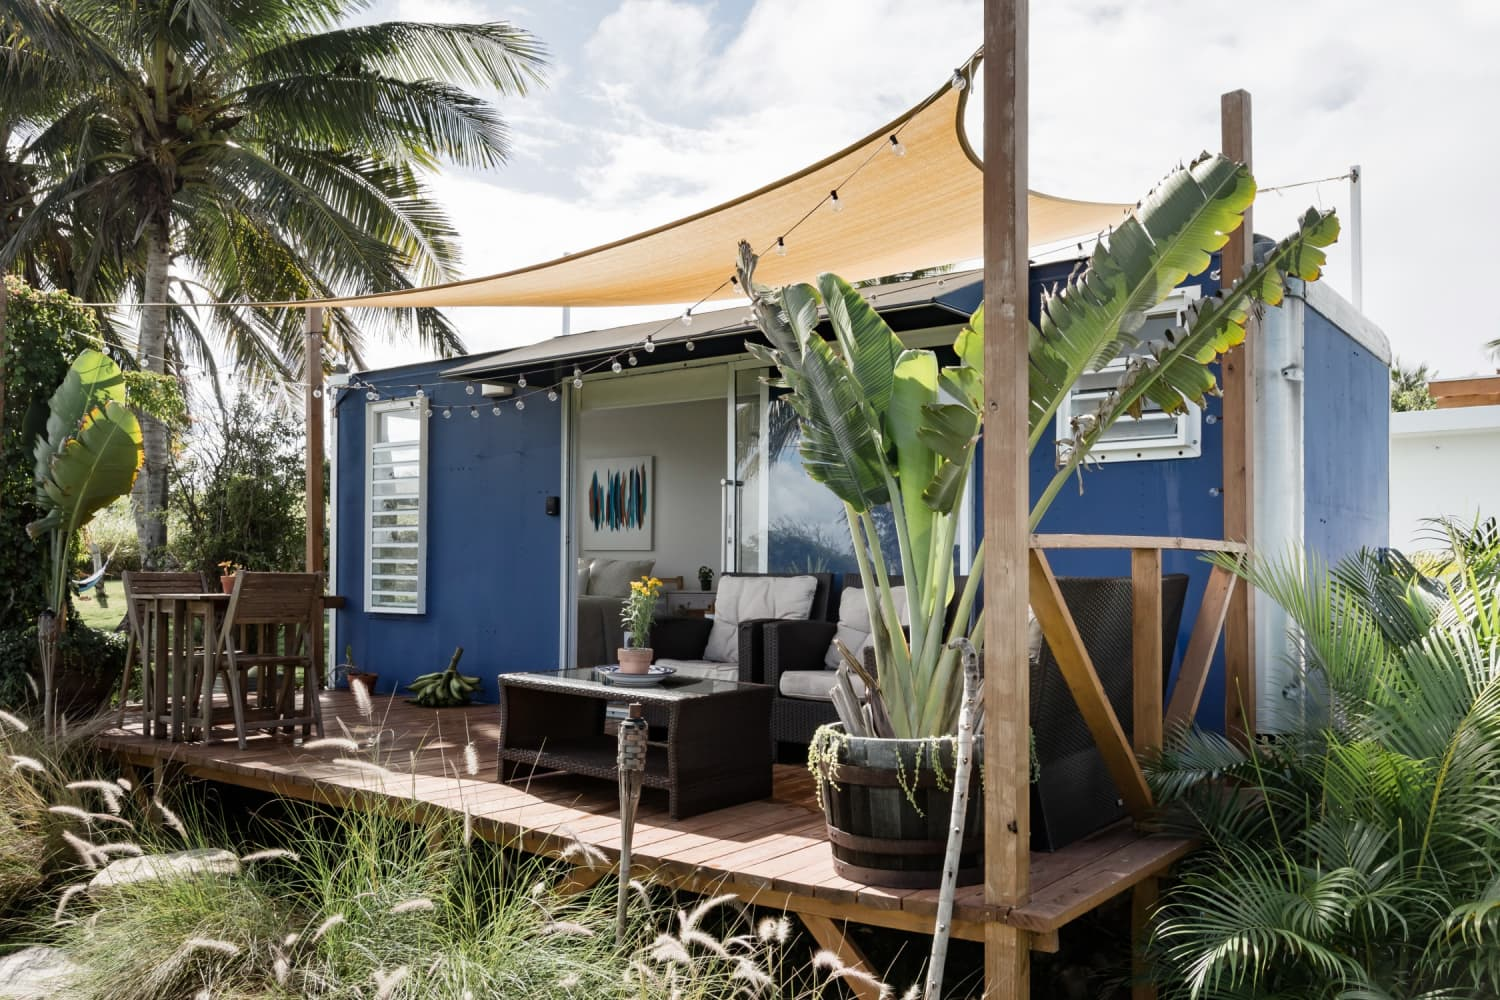 7 Luxury Tiny Houses You Can Rent for Under $100 a Night